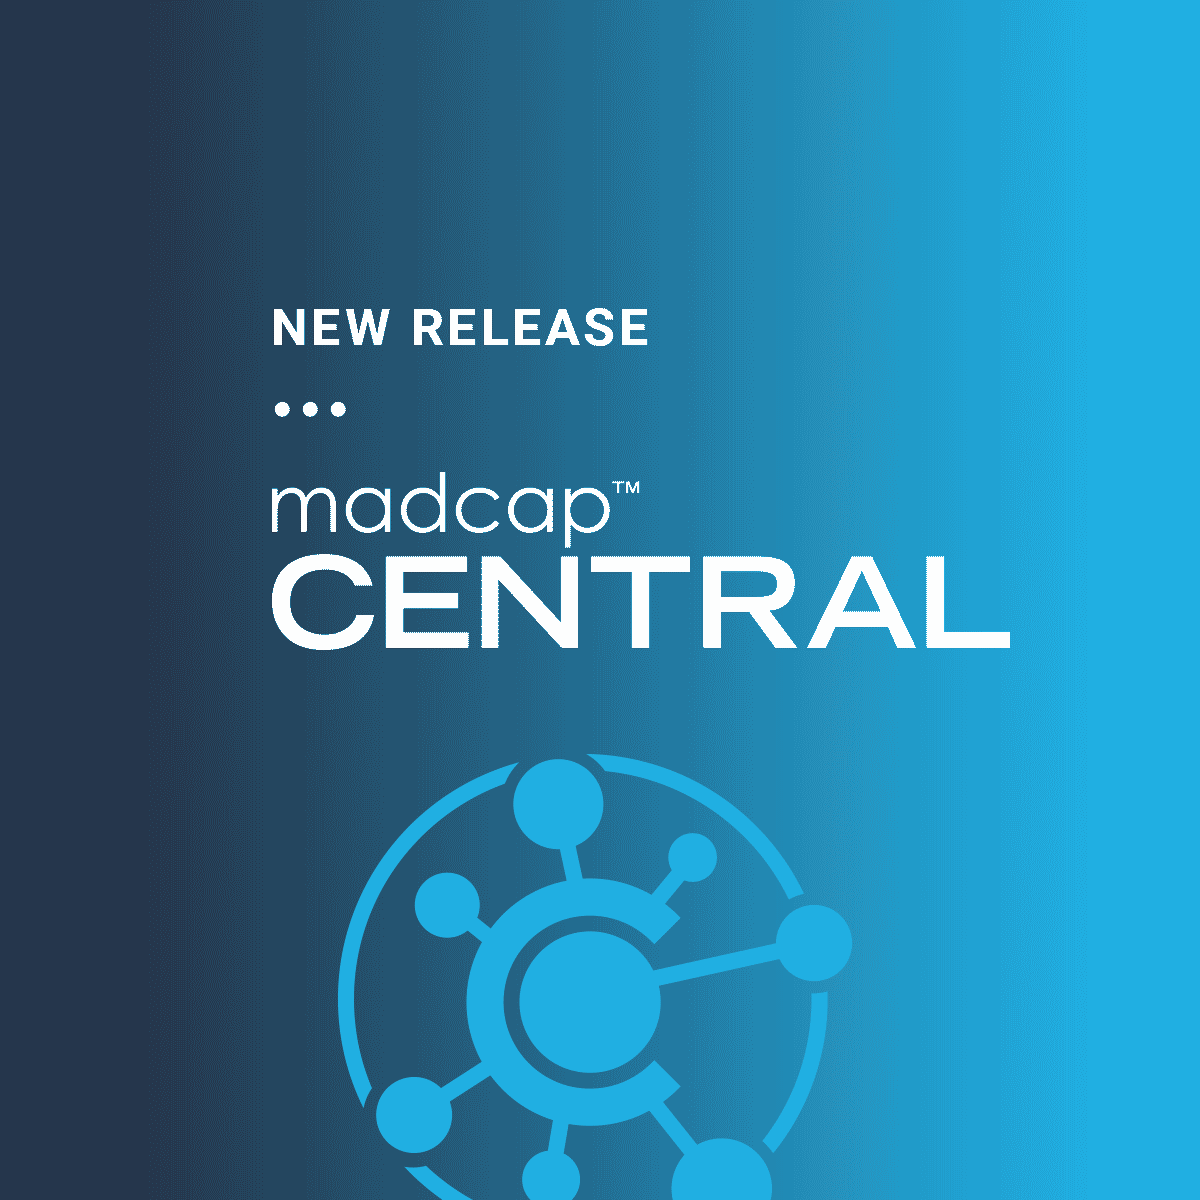 new release MadCap Central